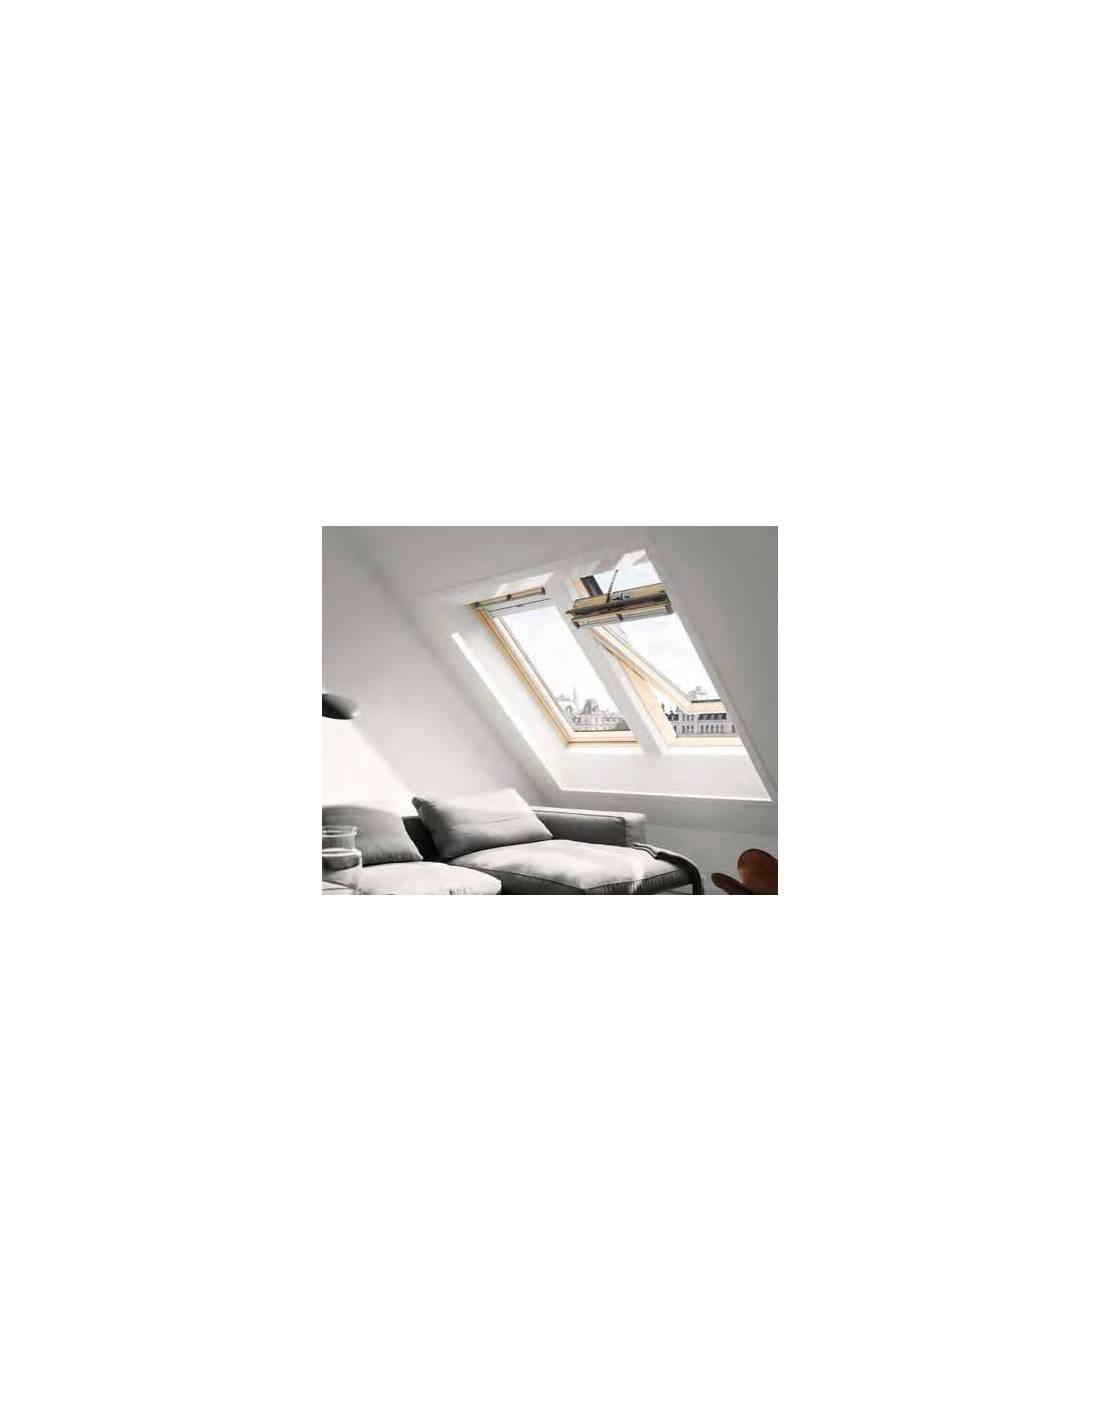 Finestra a bilico velux ggl integra solare in legno for Finestra velux ggl